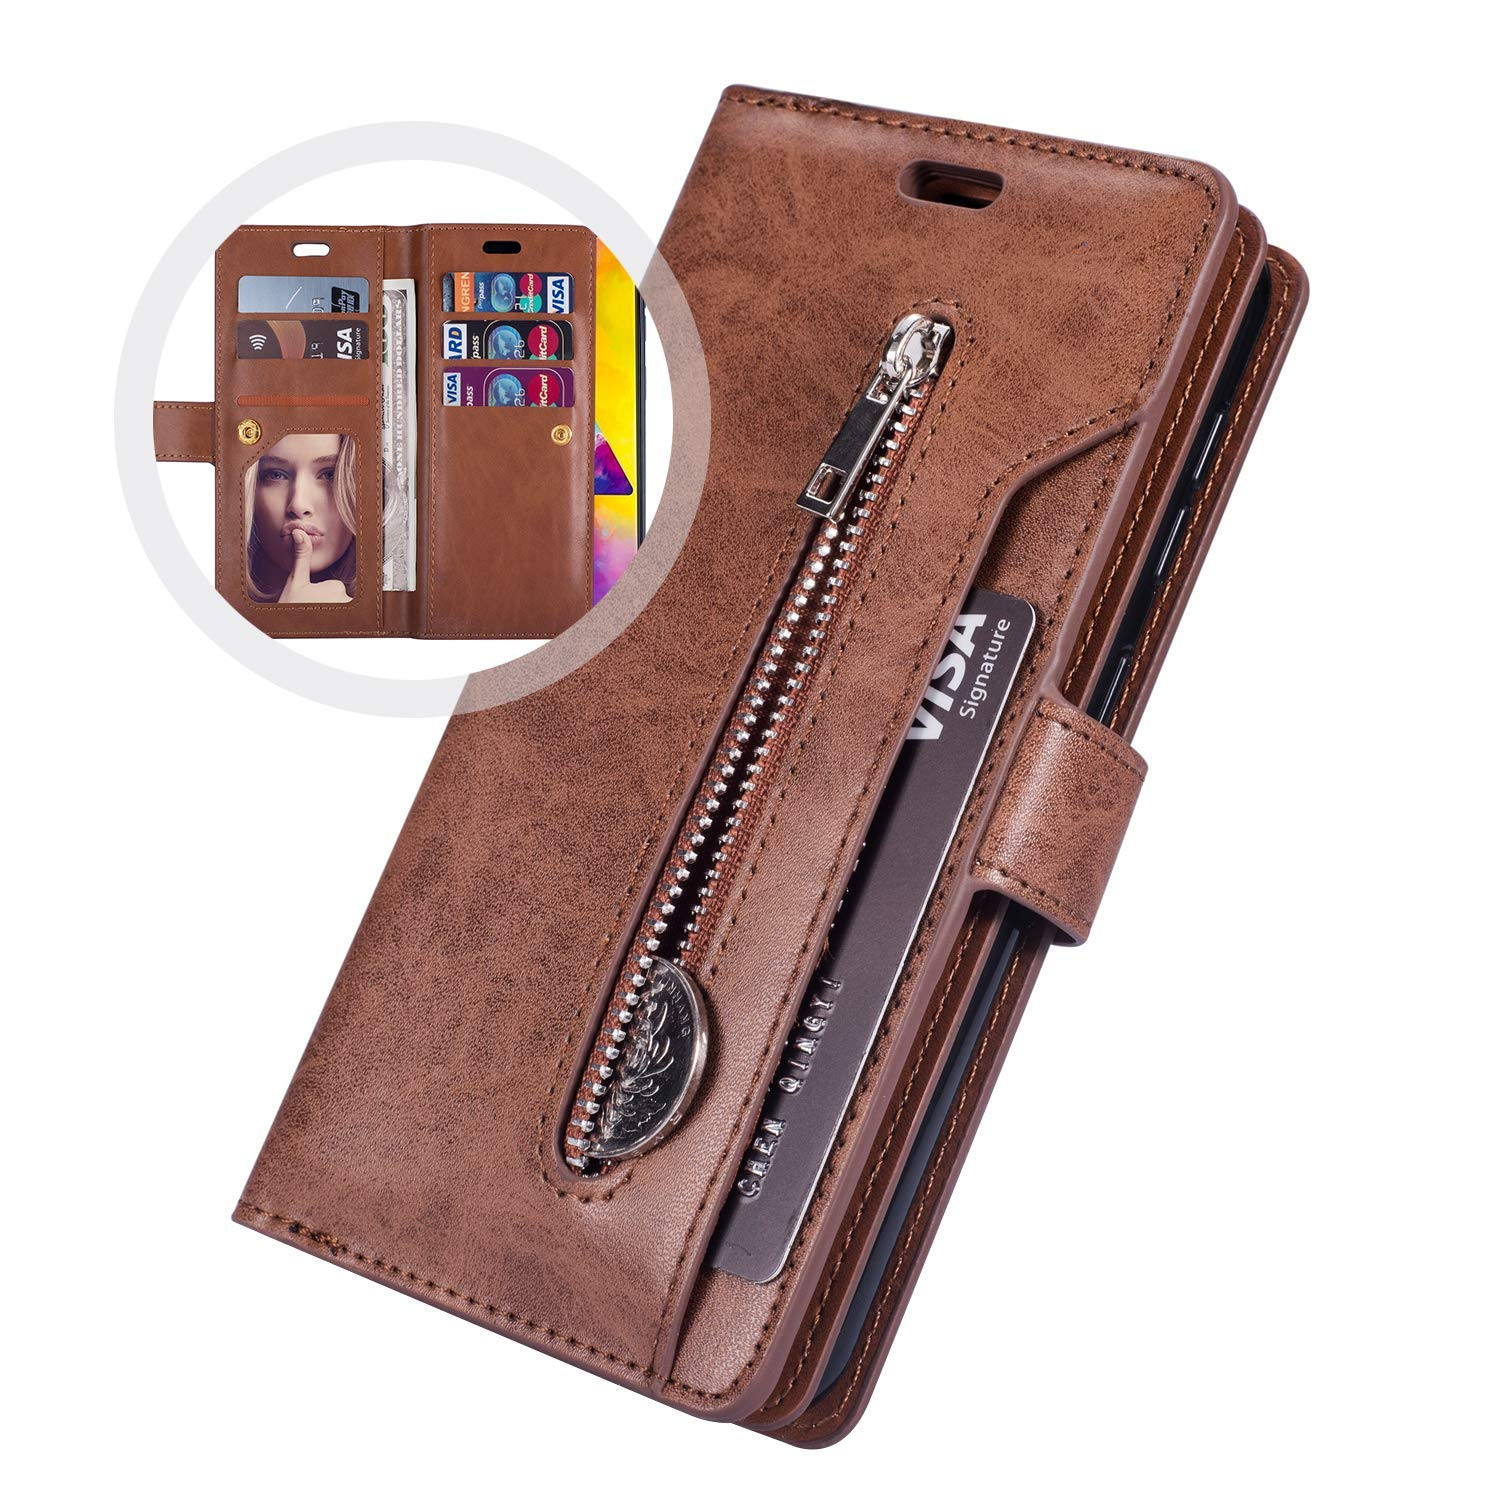 Case for Samsung Galaxy J3 Emerge,Galaxy J3 Prime Case,Amp Prime 2 / Express Prime 2 Case,PU Leather Flip Wallet Case Protective Case Cover Multi-Function 9 Credit Card Holders Zipper Coin Purse,Brown by PHEZEN